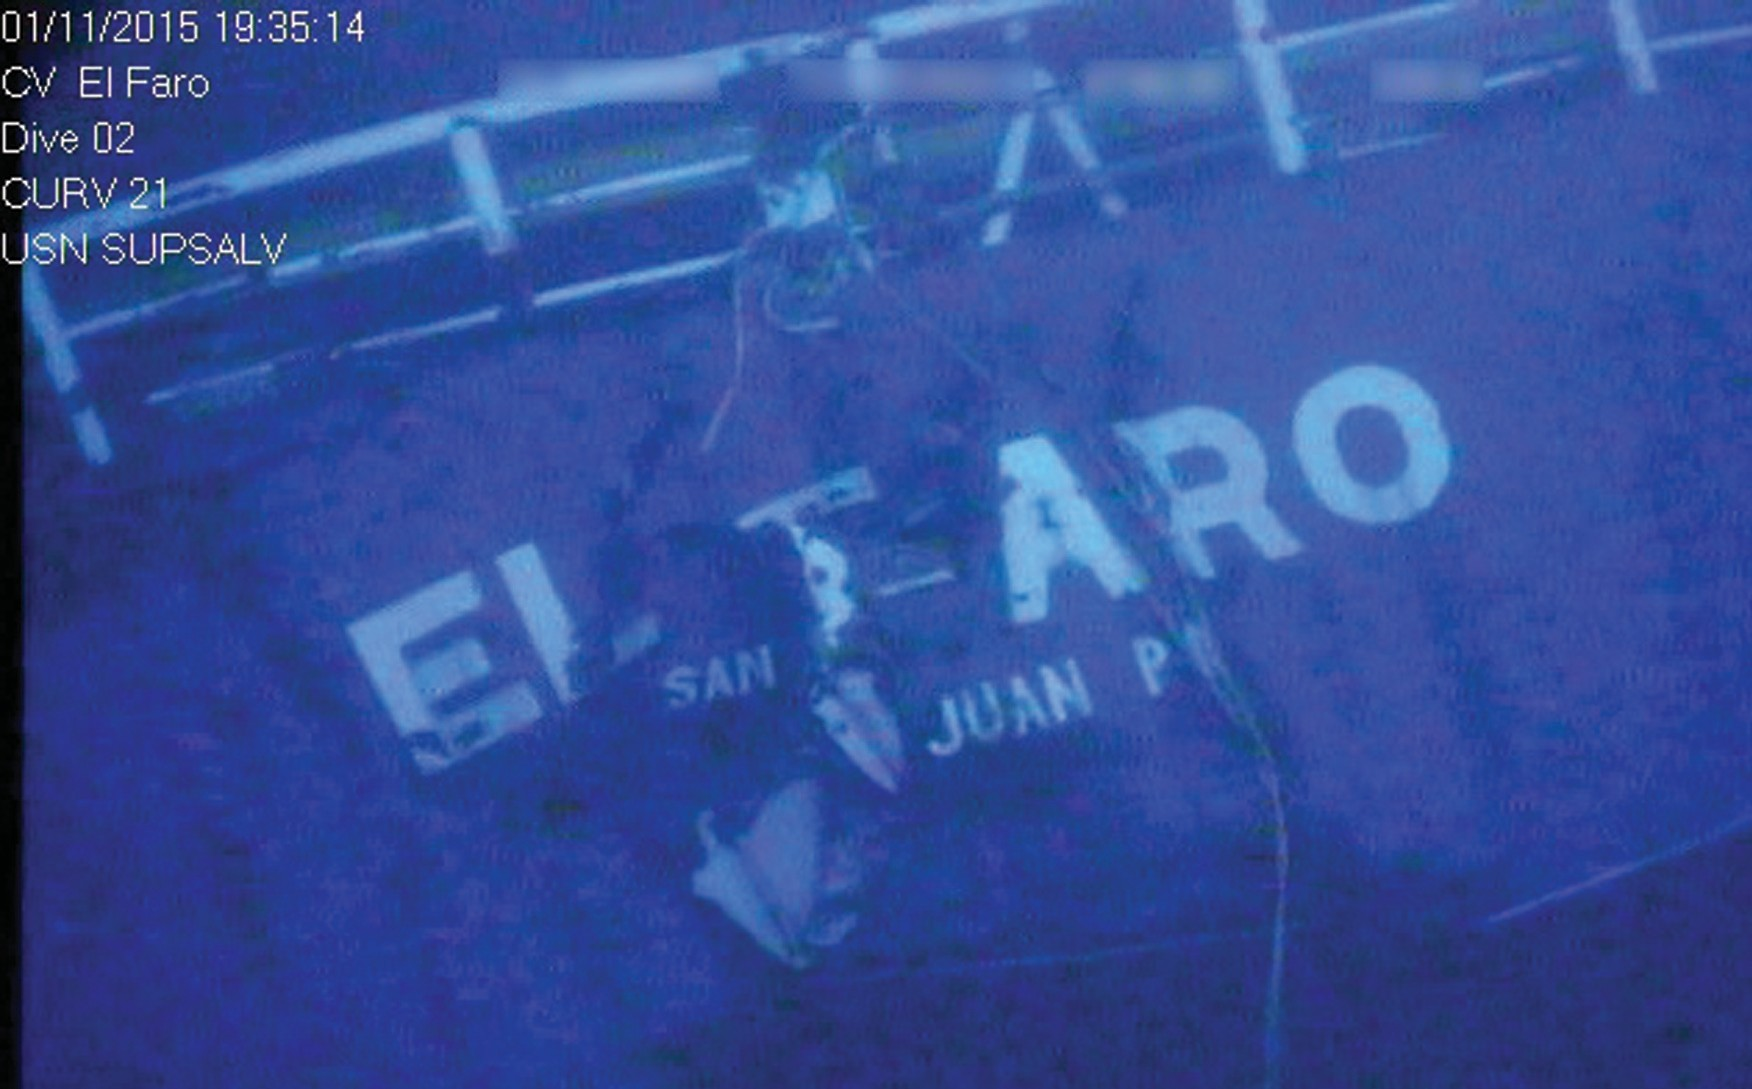 In this photograph released by the National Transportation Safety Board, the damaged stern of the sunken freighter El Faro is seen on the seafloor, 15,000 feet deep near the Bahamas.